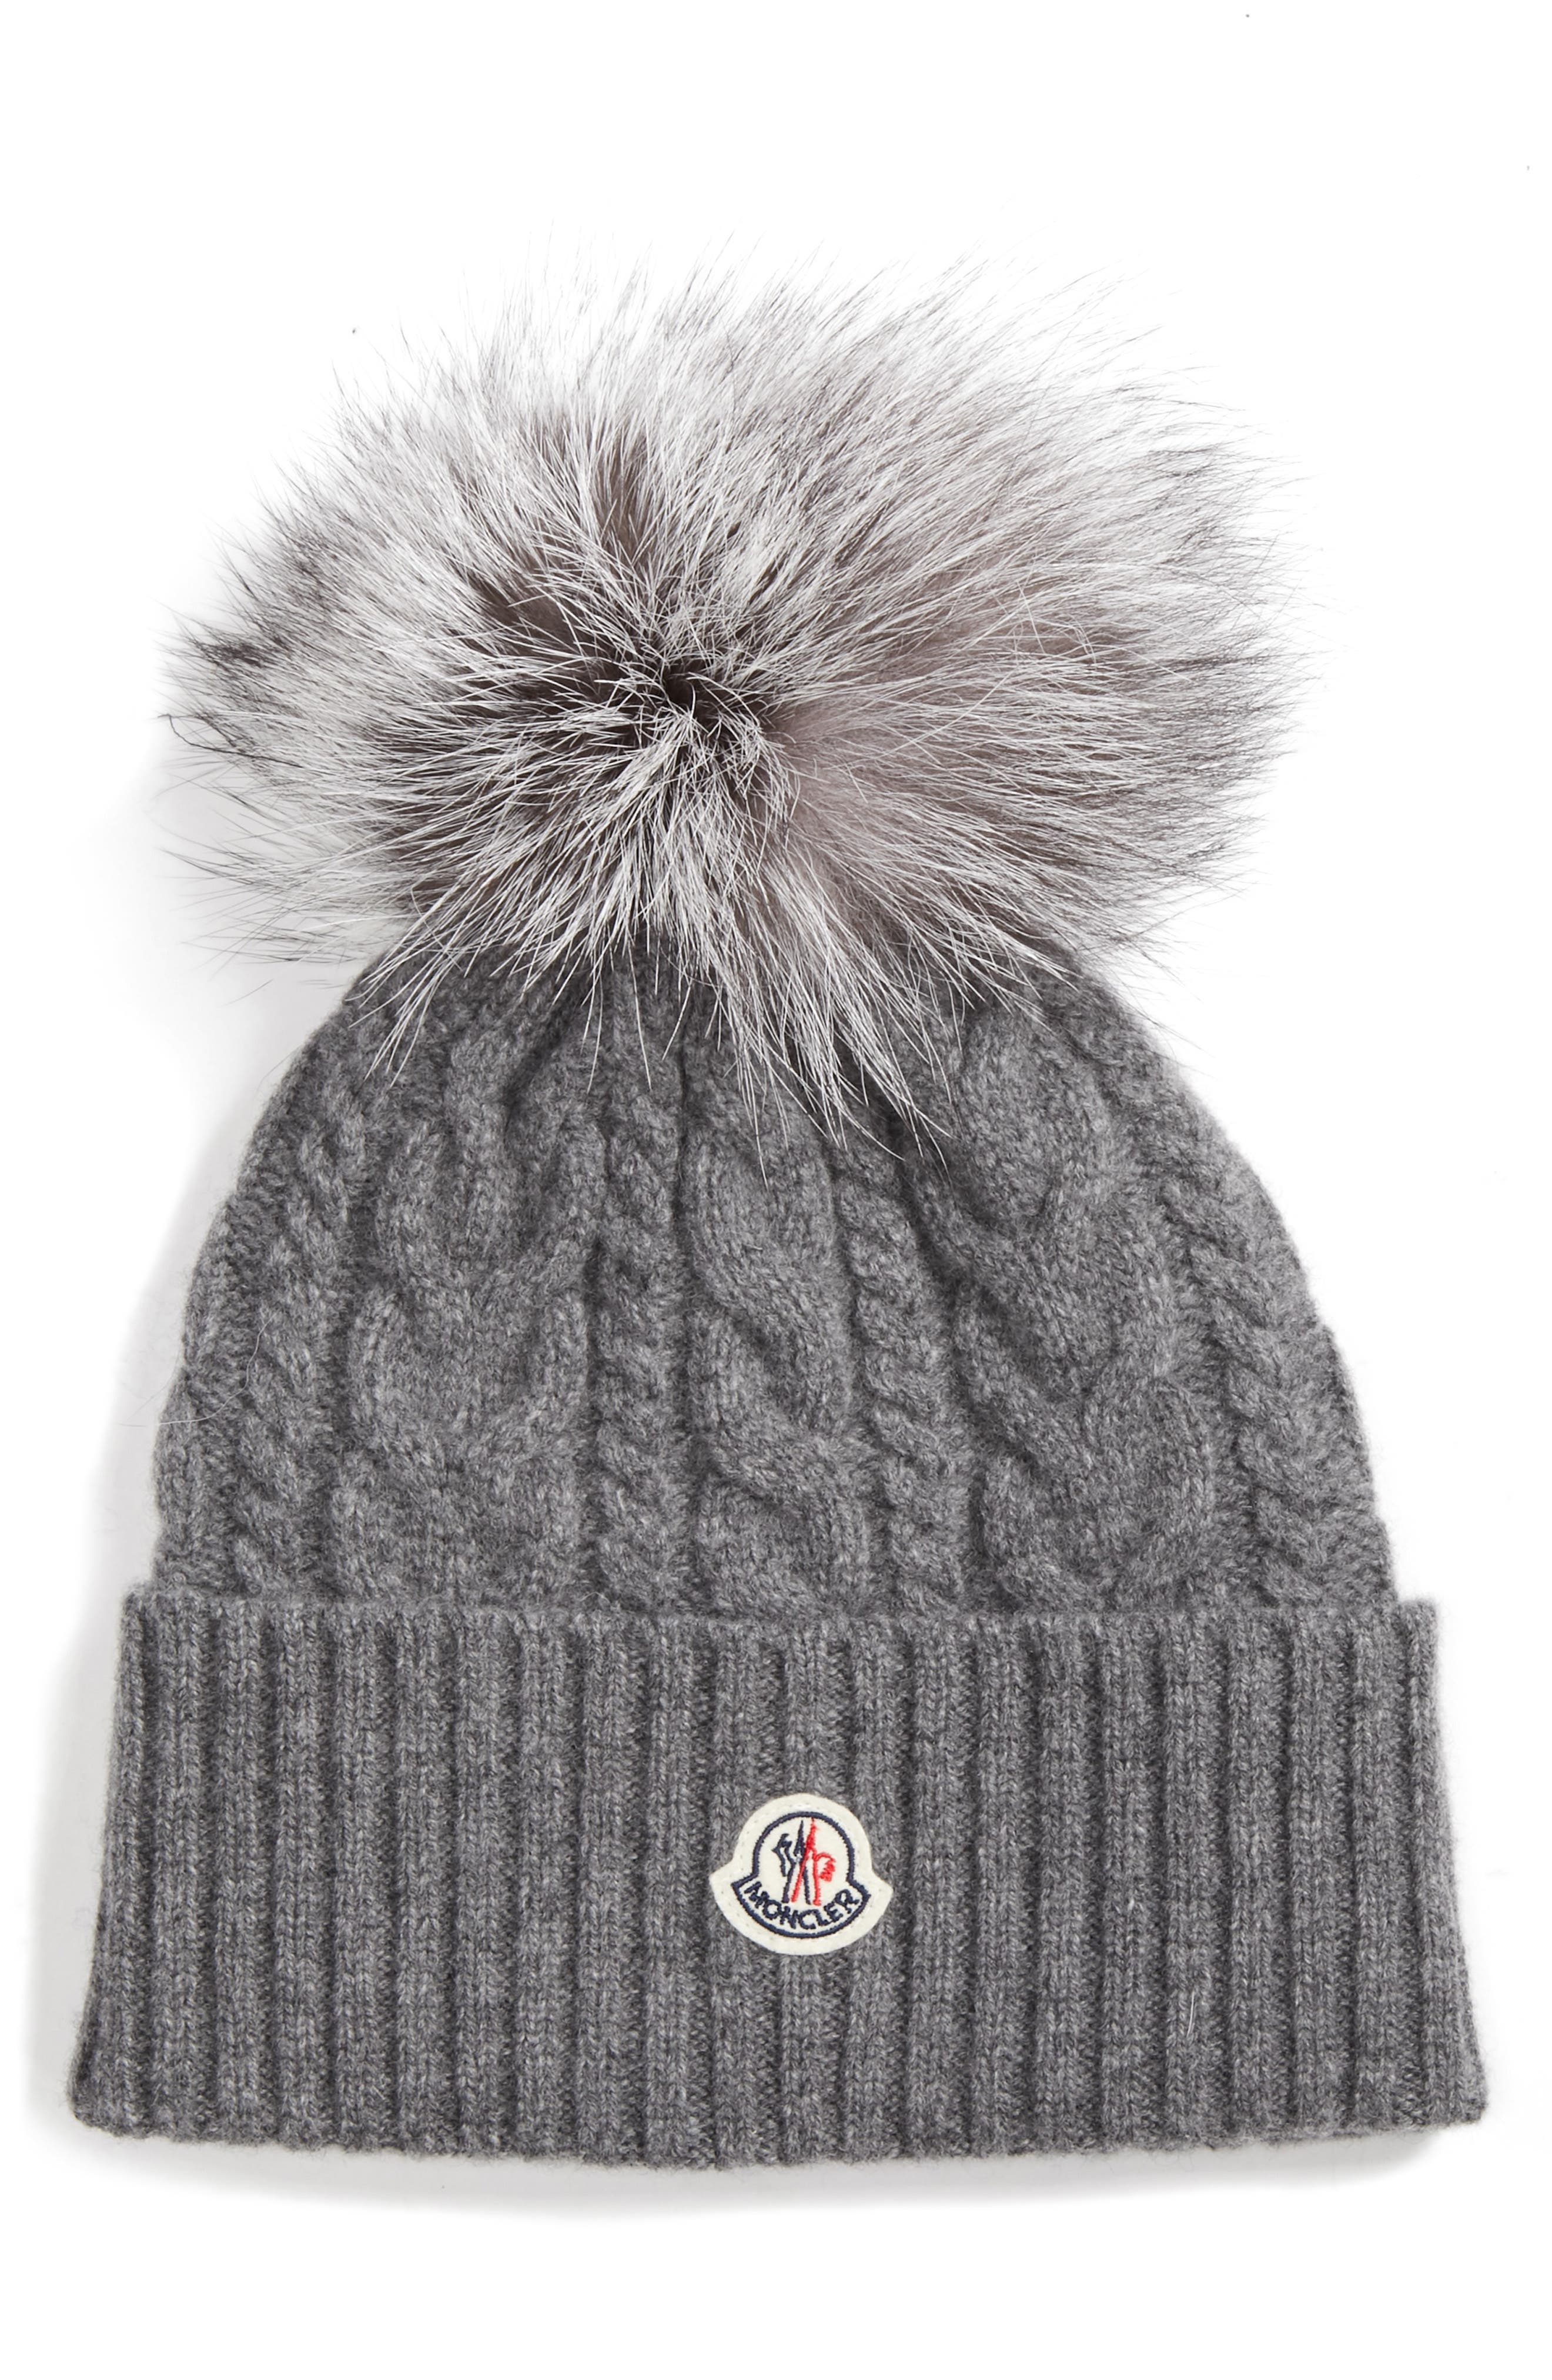 525ca58a6 Moncler Hats for Women